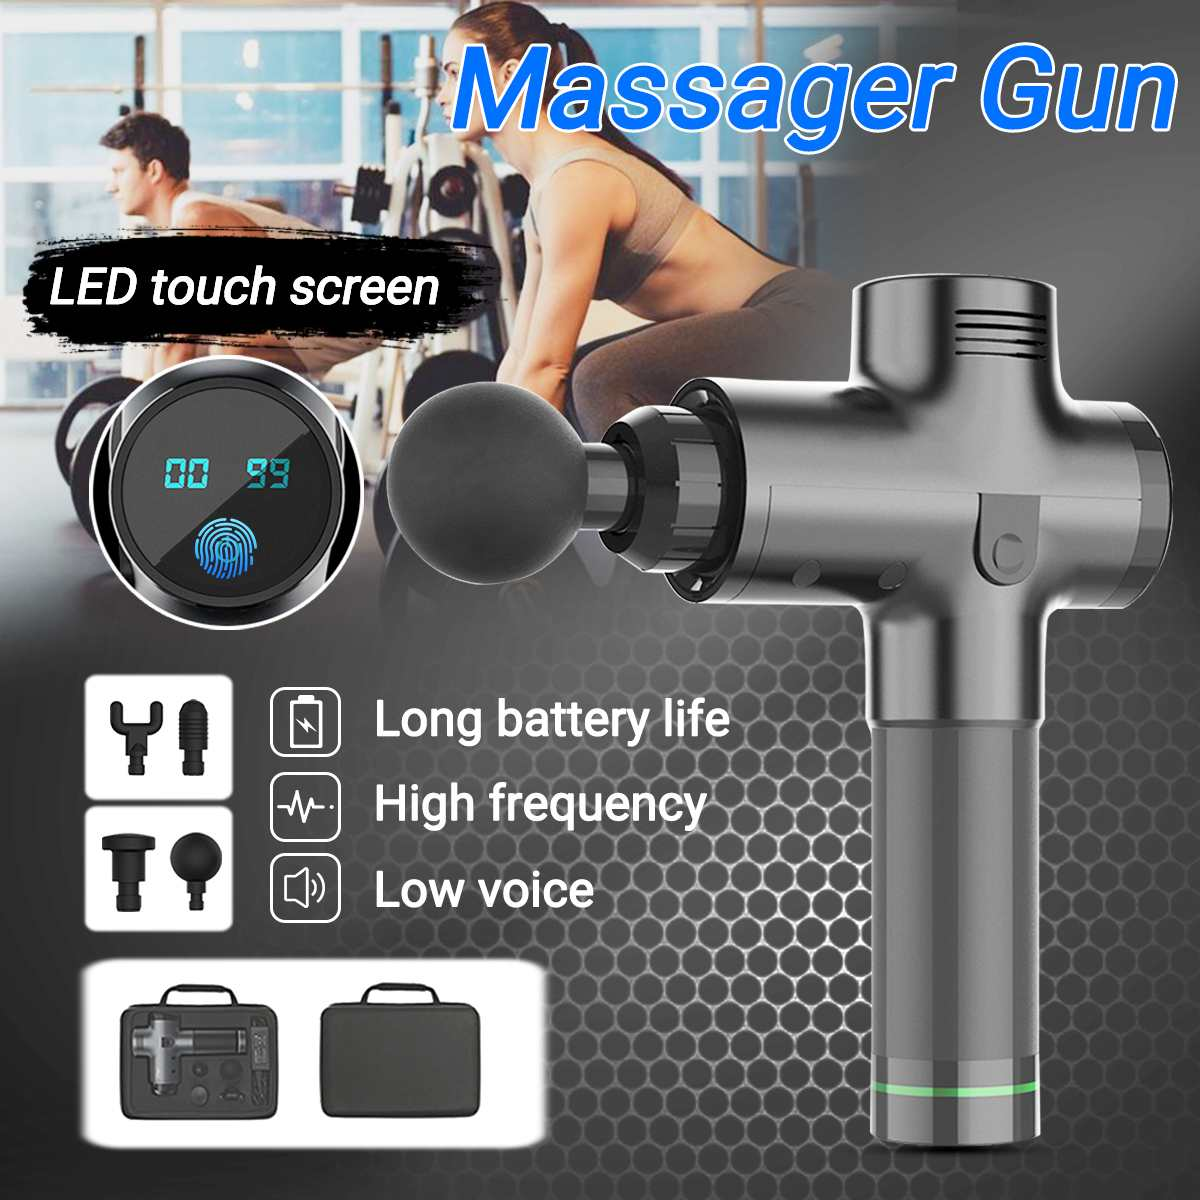 GunMassage - Therapeutic Muscle Massag Gun For Quick Pain Relief and Shorter Recovery Time